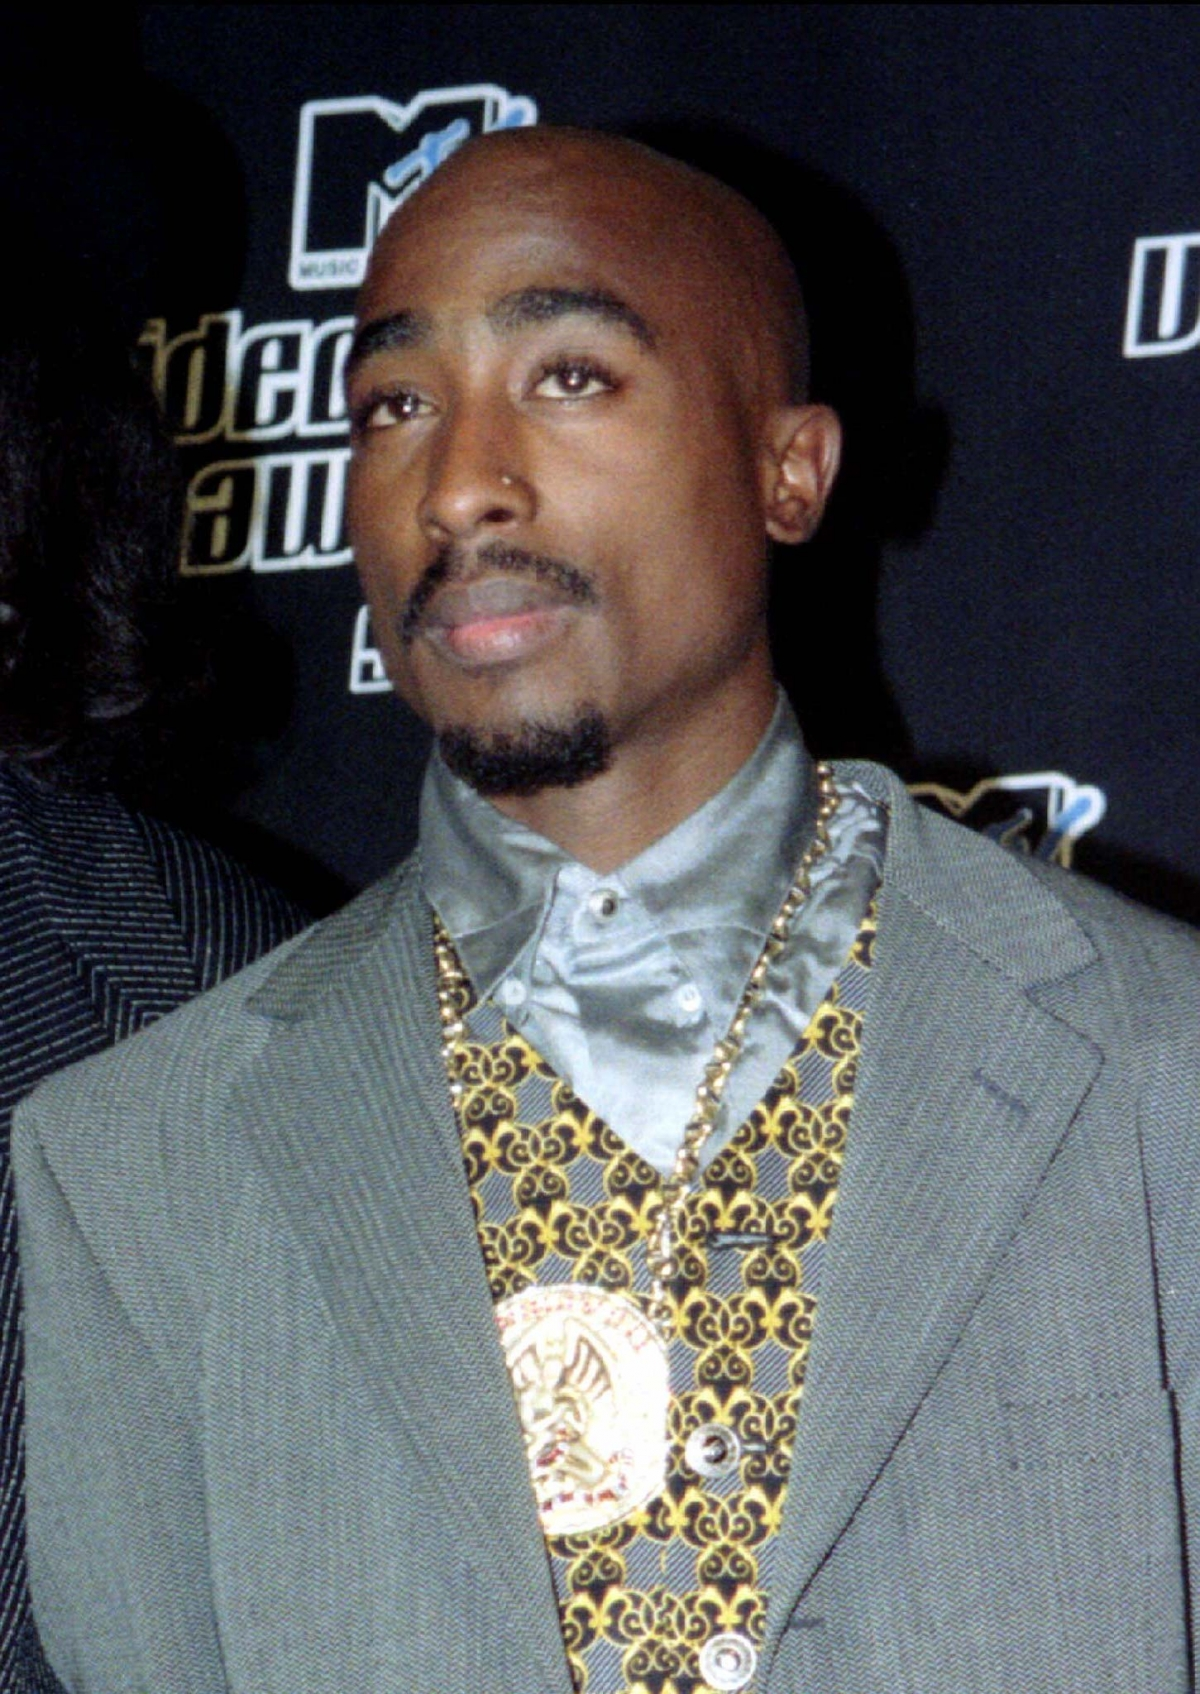 2Pac at MTV awards